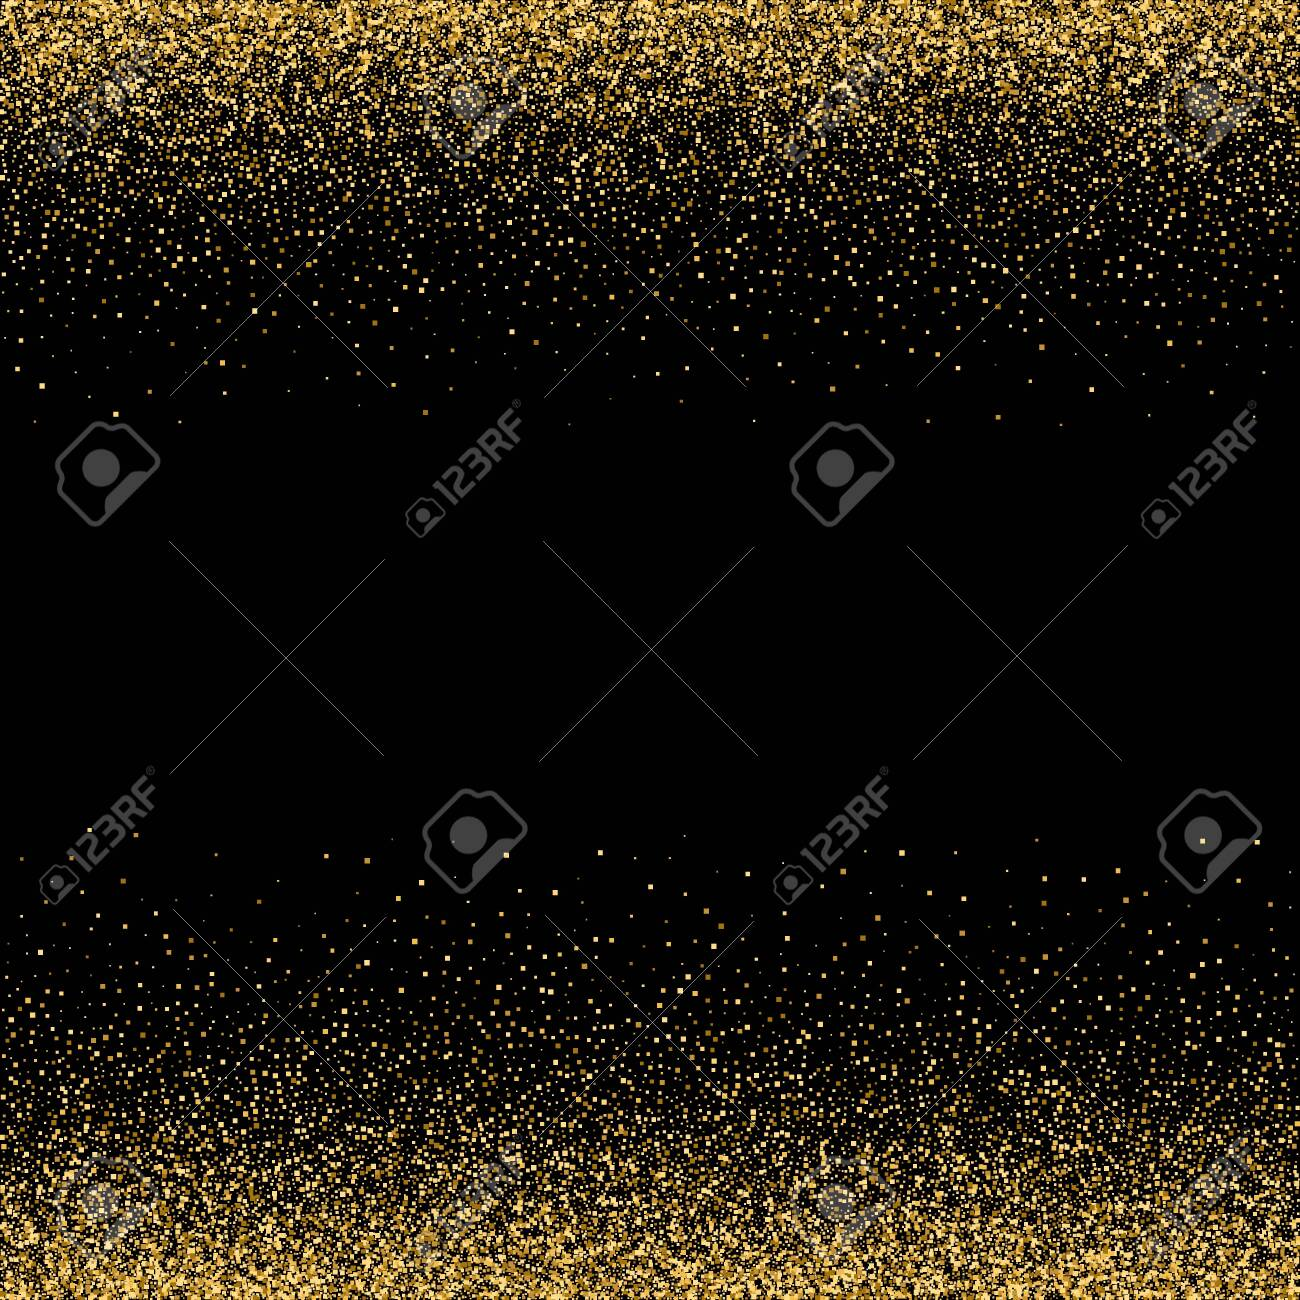 Sparkling glitter border, frame. Vector gold decoration. For wedding invitations, party posters, Christmas, New Year and birthday cards. - 135462842